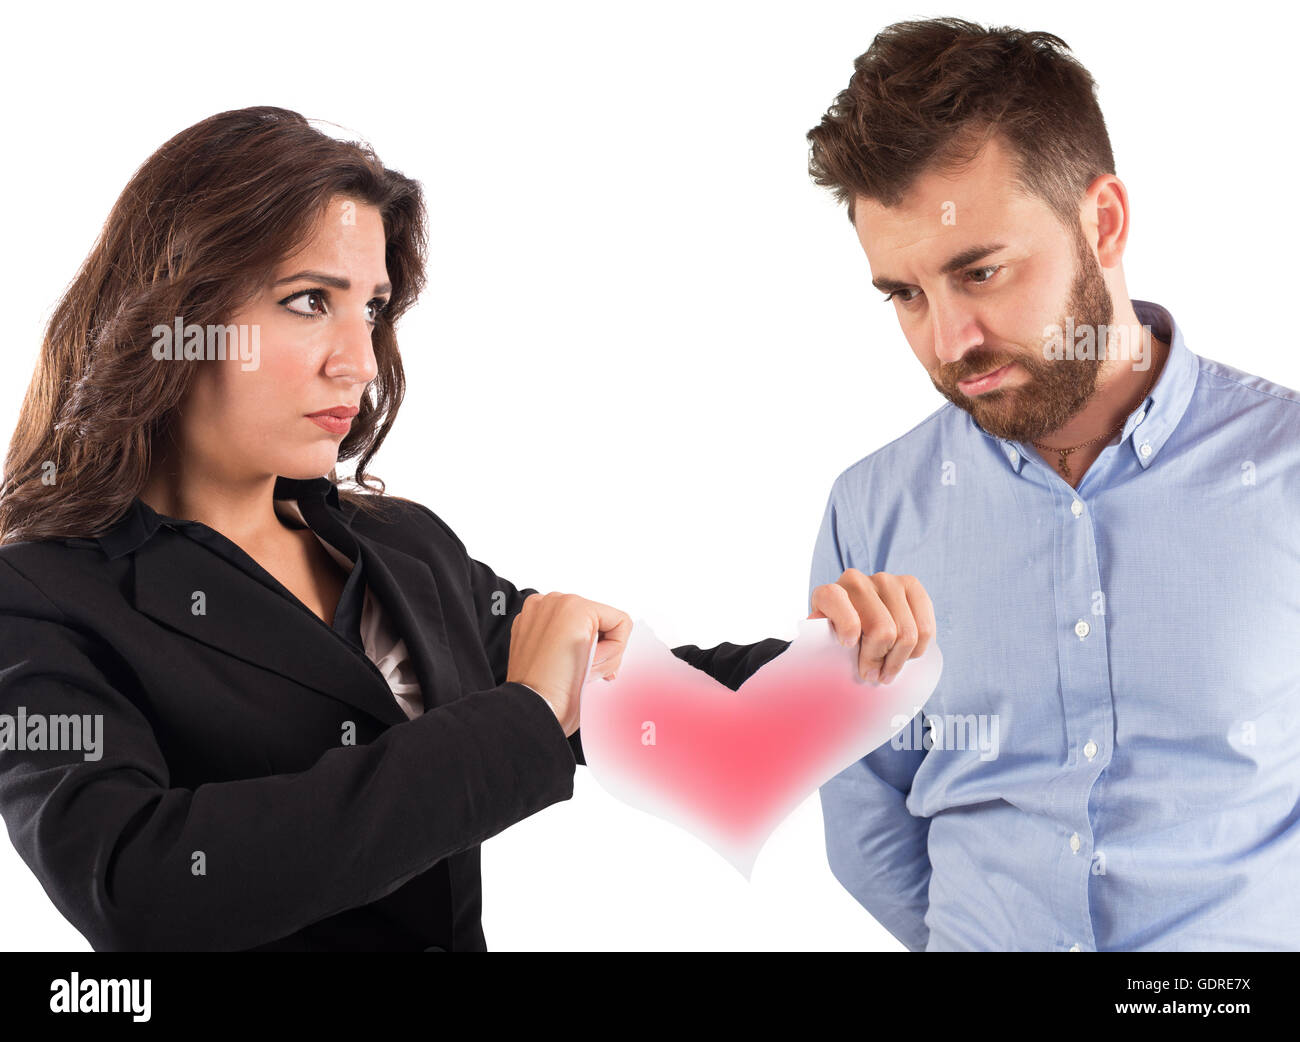 Love relationship ended - Stock Image